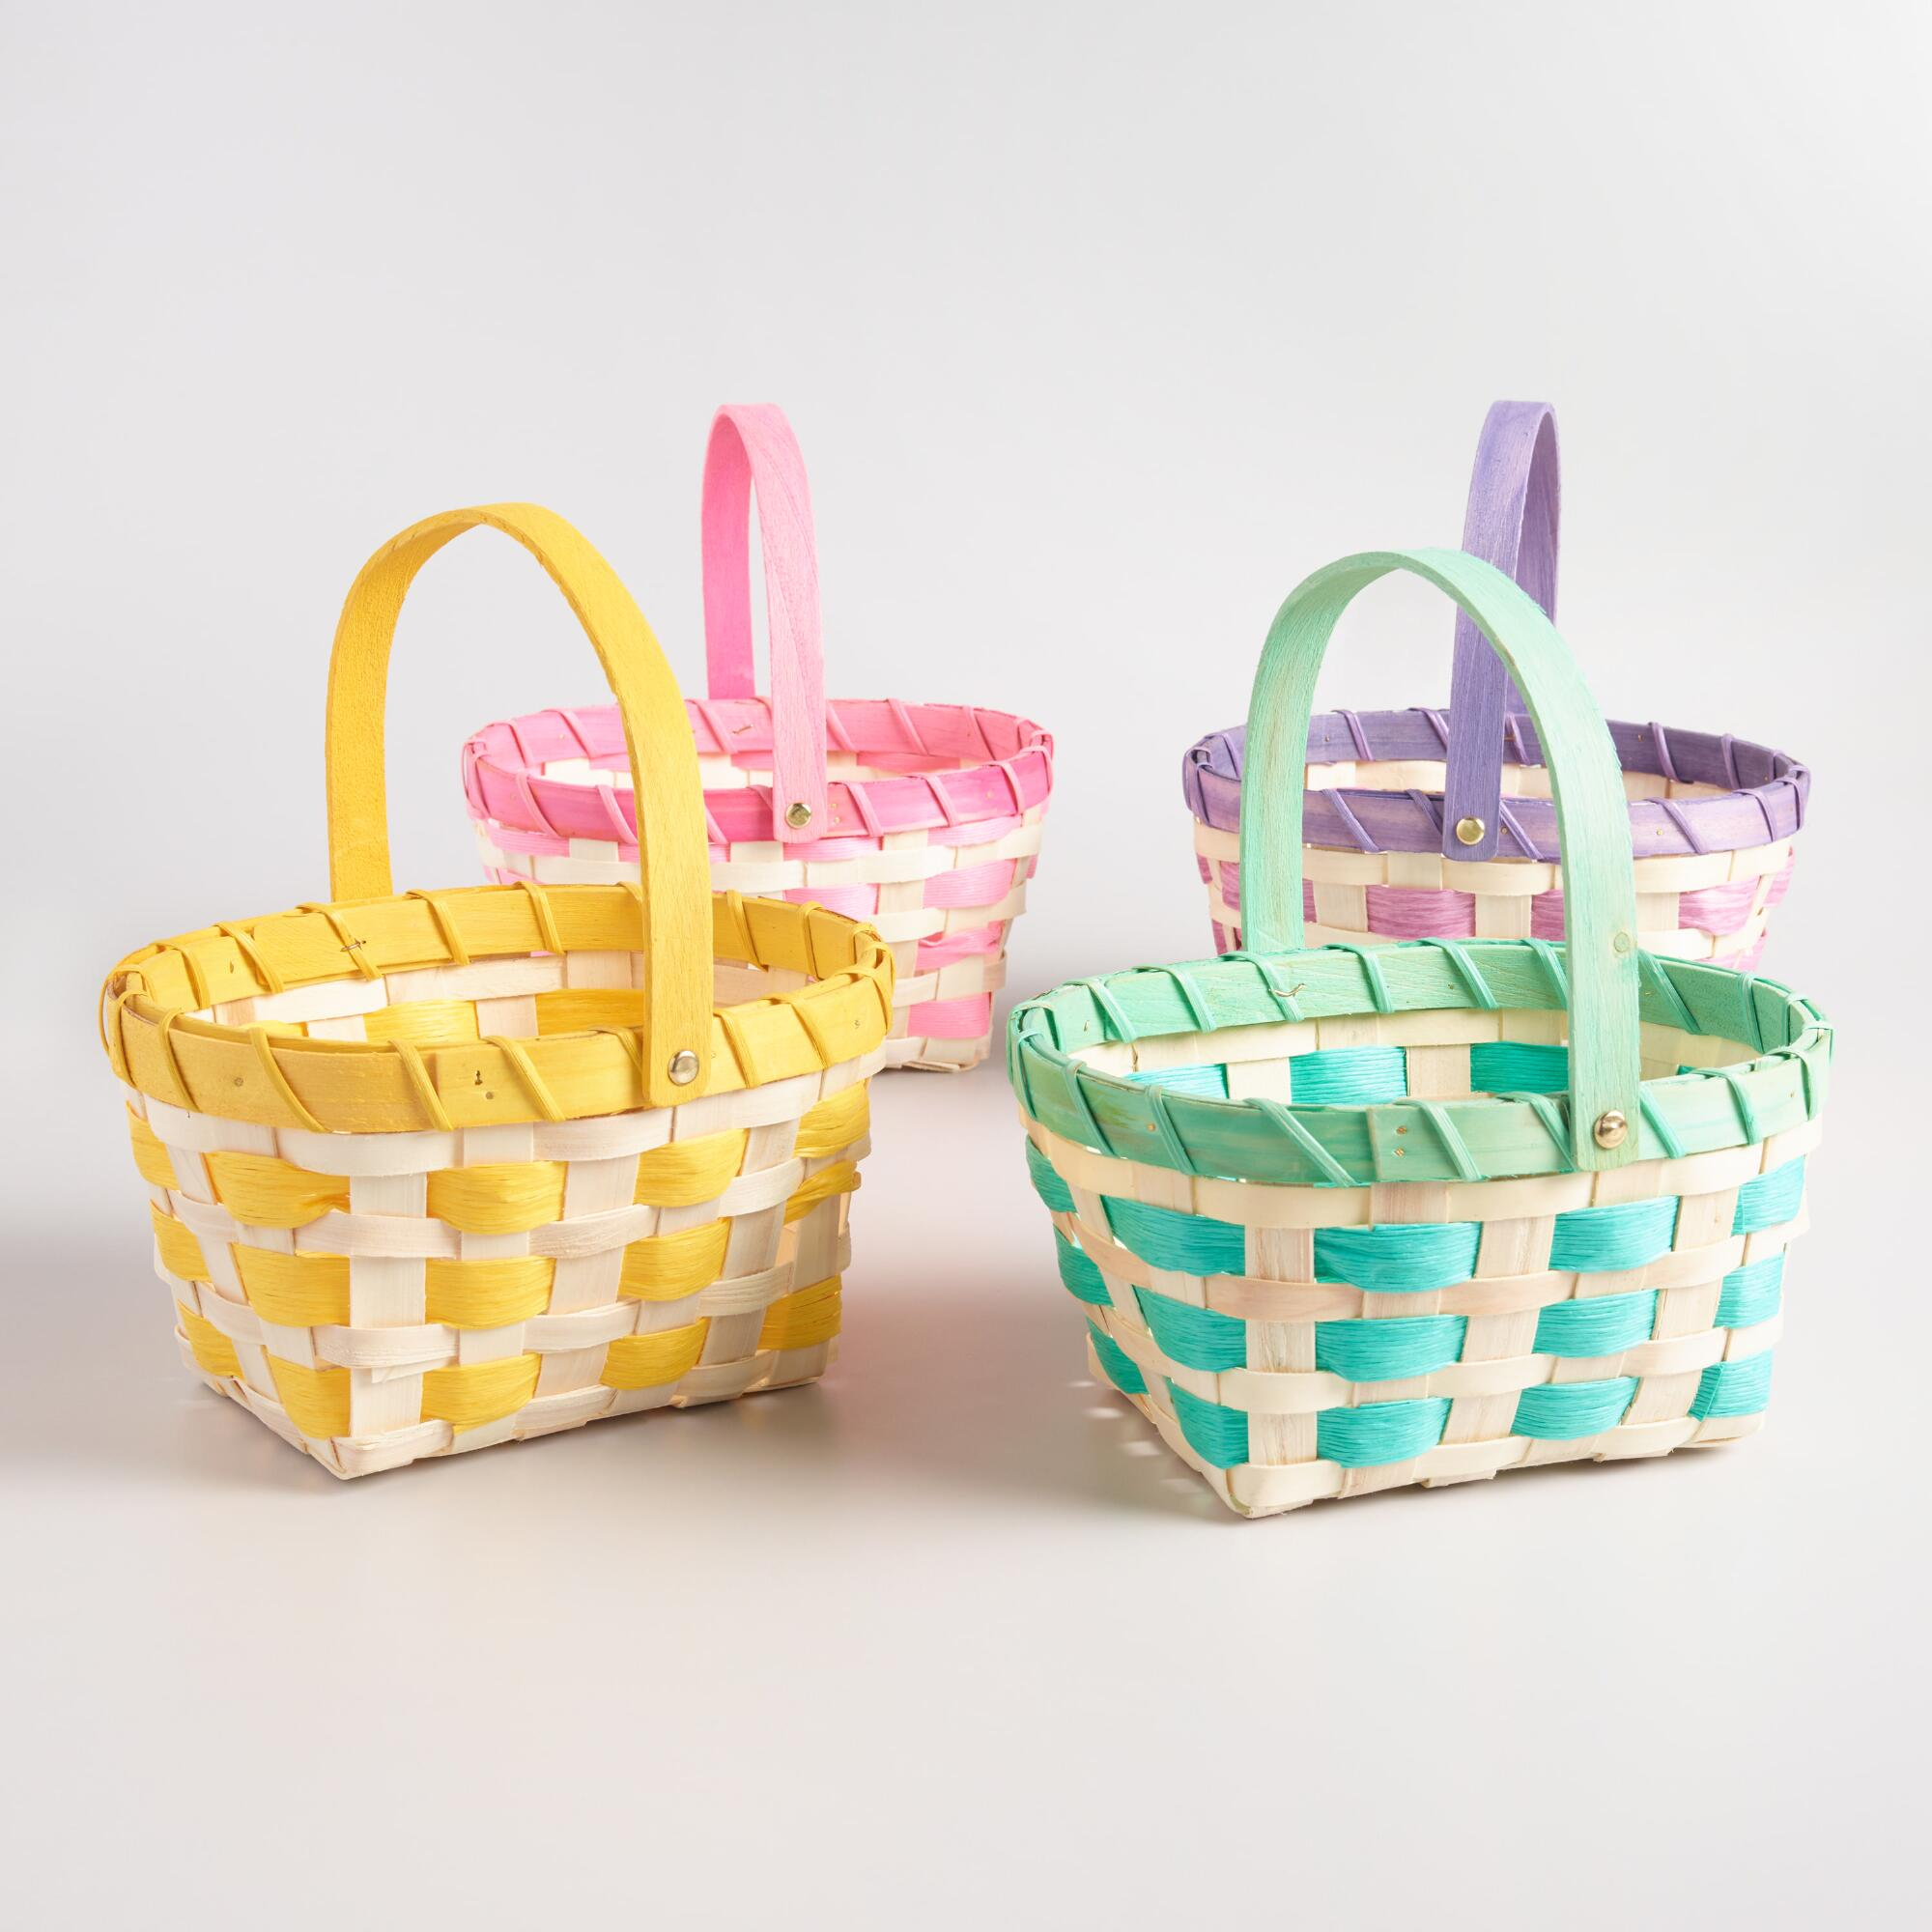 Large Rope Easter Baskets Set of 4 | World Market